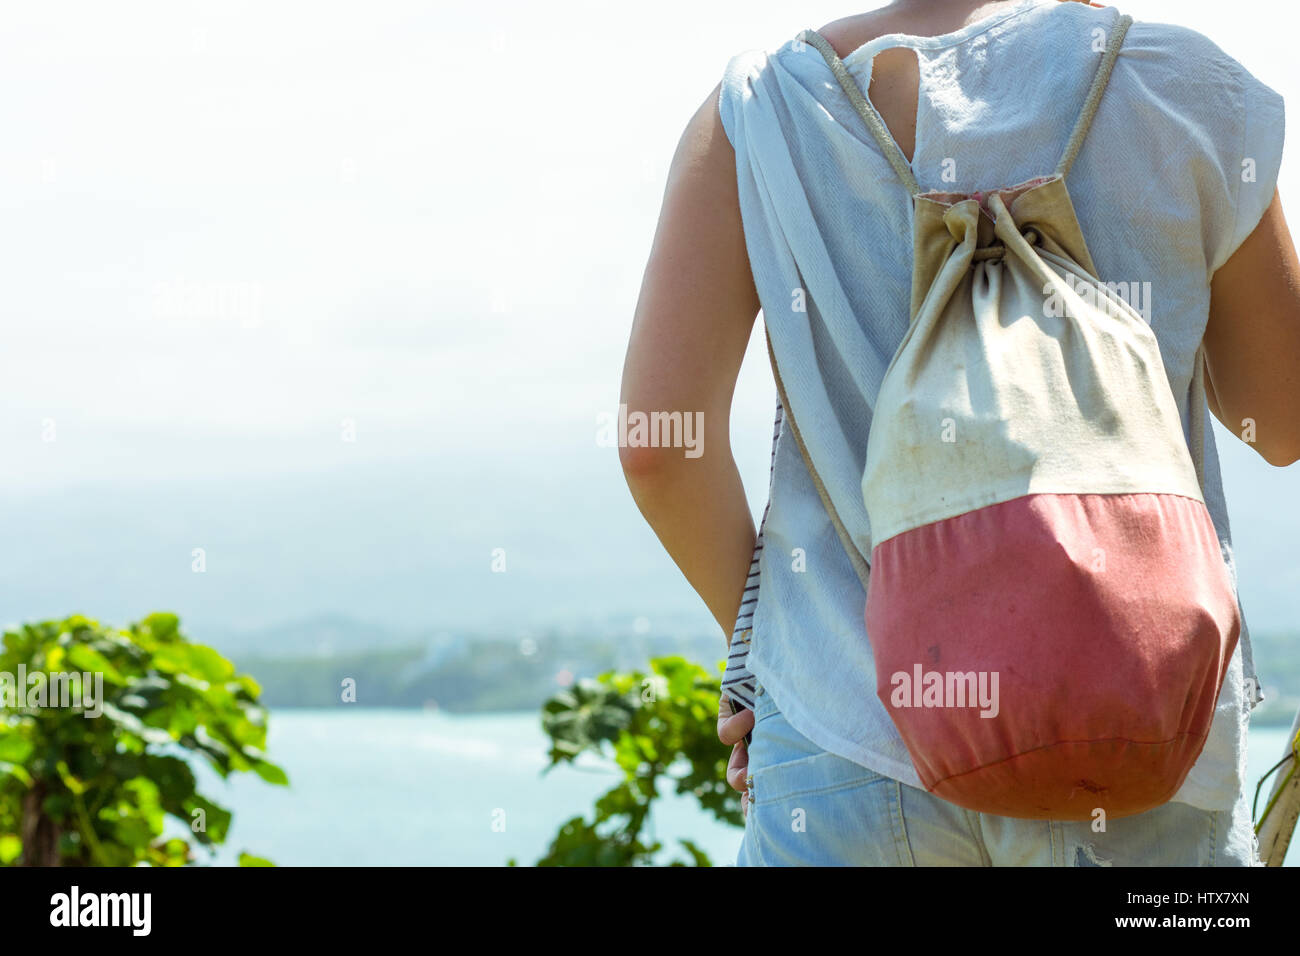 Rear view of a young woman wearing a back pack looking over a cliff and sea view. - Stock Image